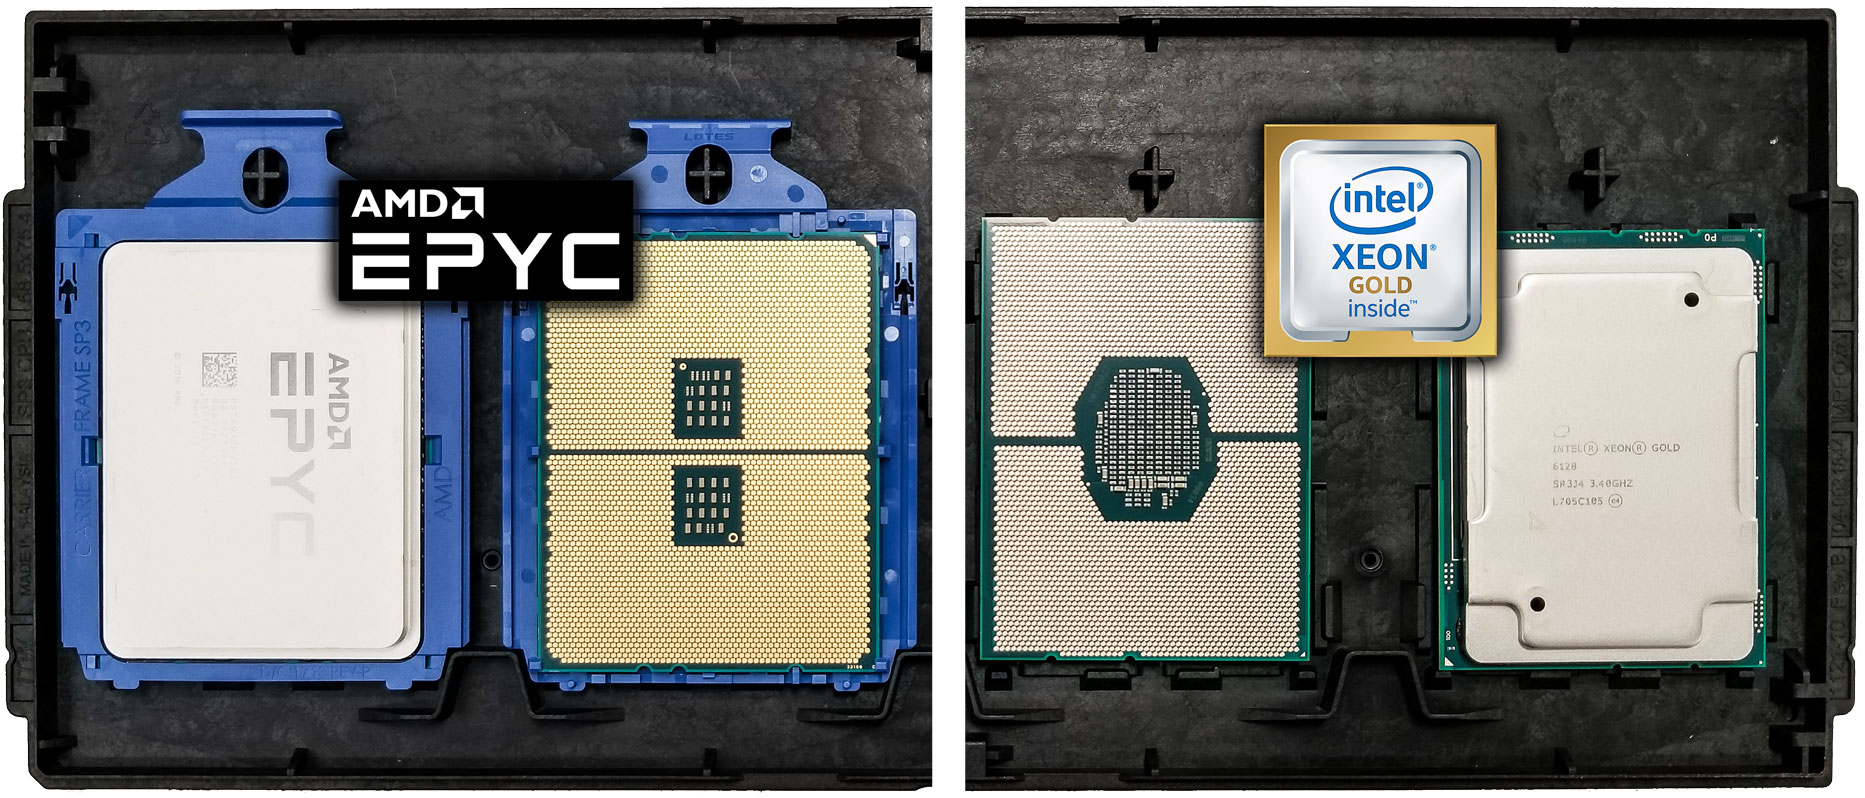 AMD EPYC and Intel Xeon SP - front and back